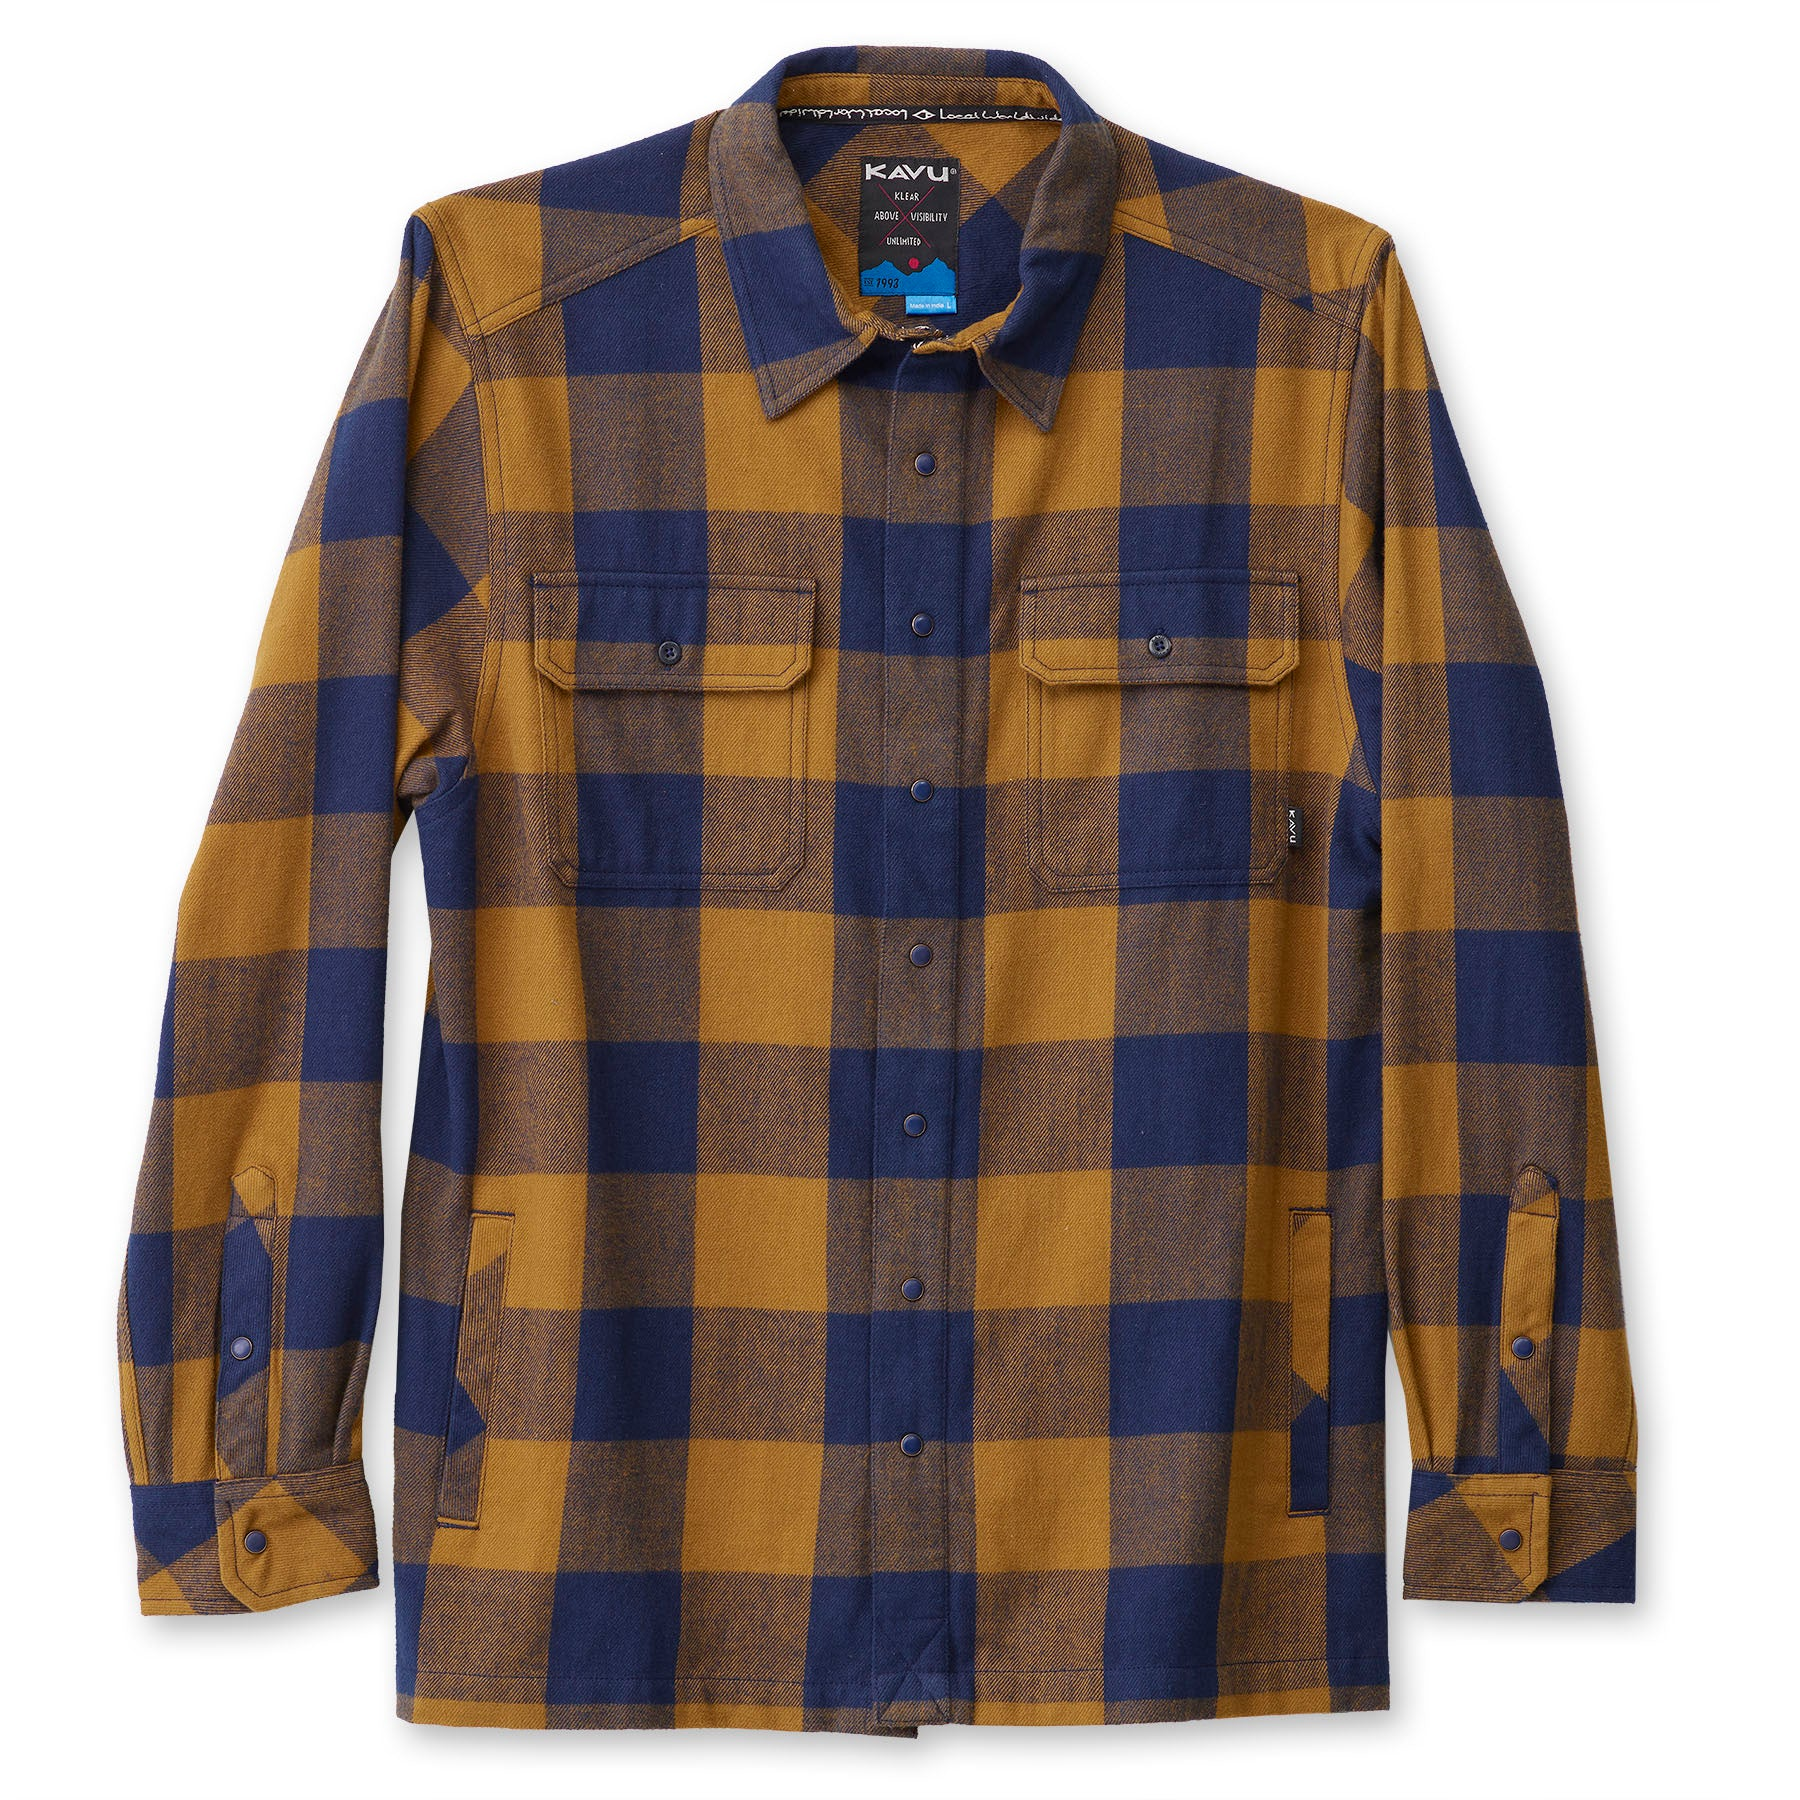 KAVU Men's Northlake Shirt Jacket - Sale